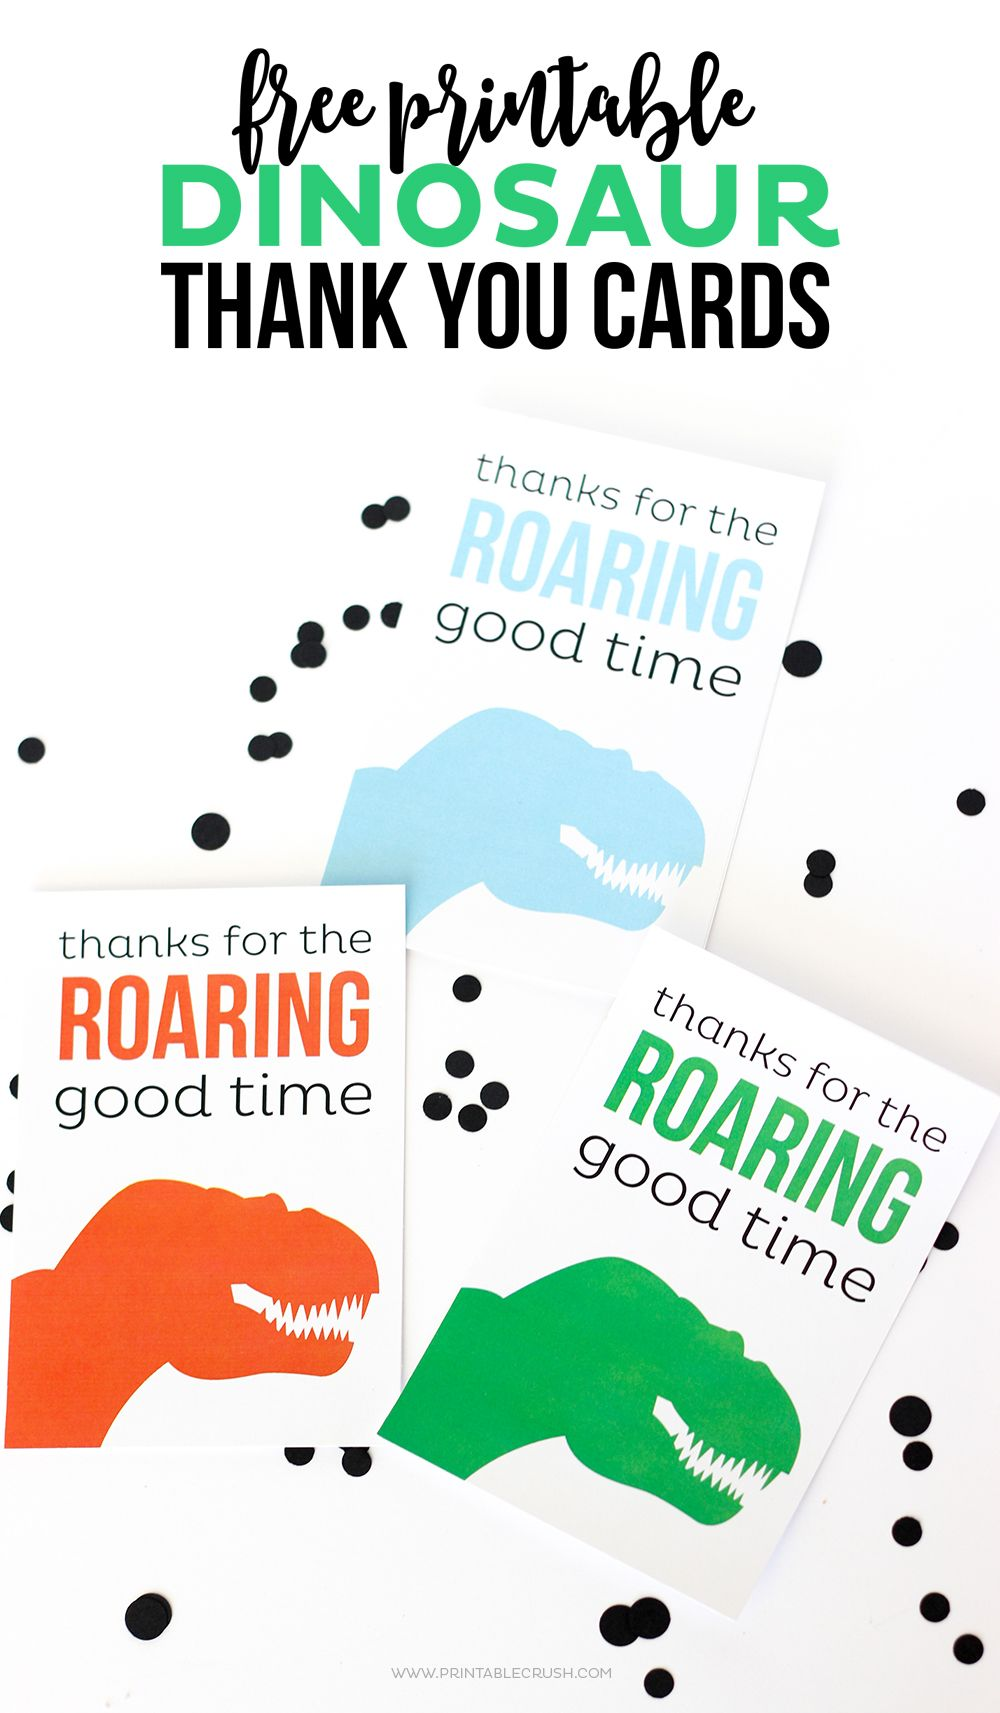 Printable Dinosaur Thank You Cards Free Thank You Cards From Kids Free Thank You Cards Dinosaur Birthday Party Invitations